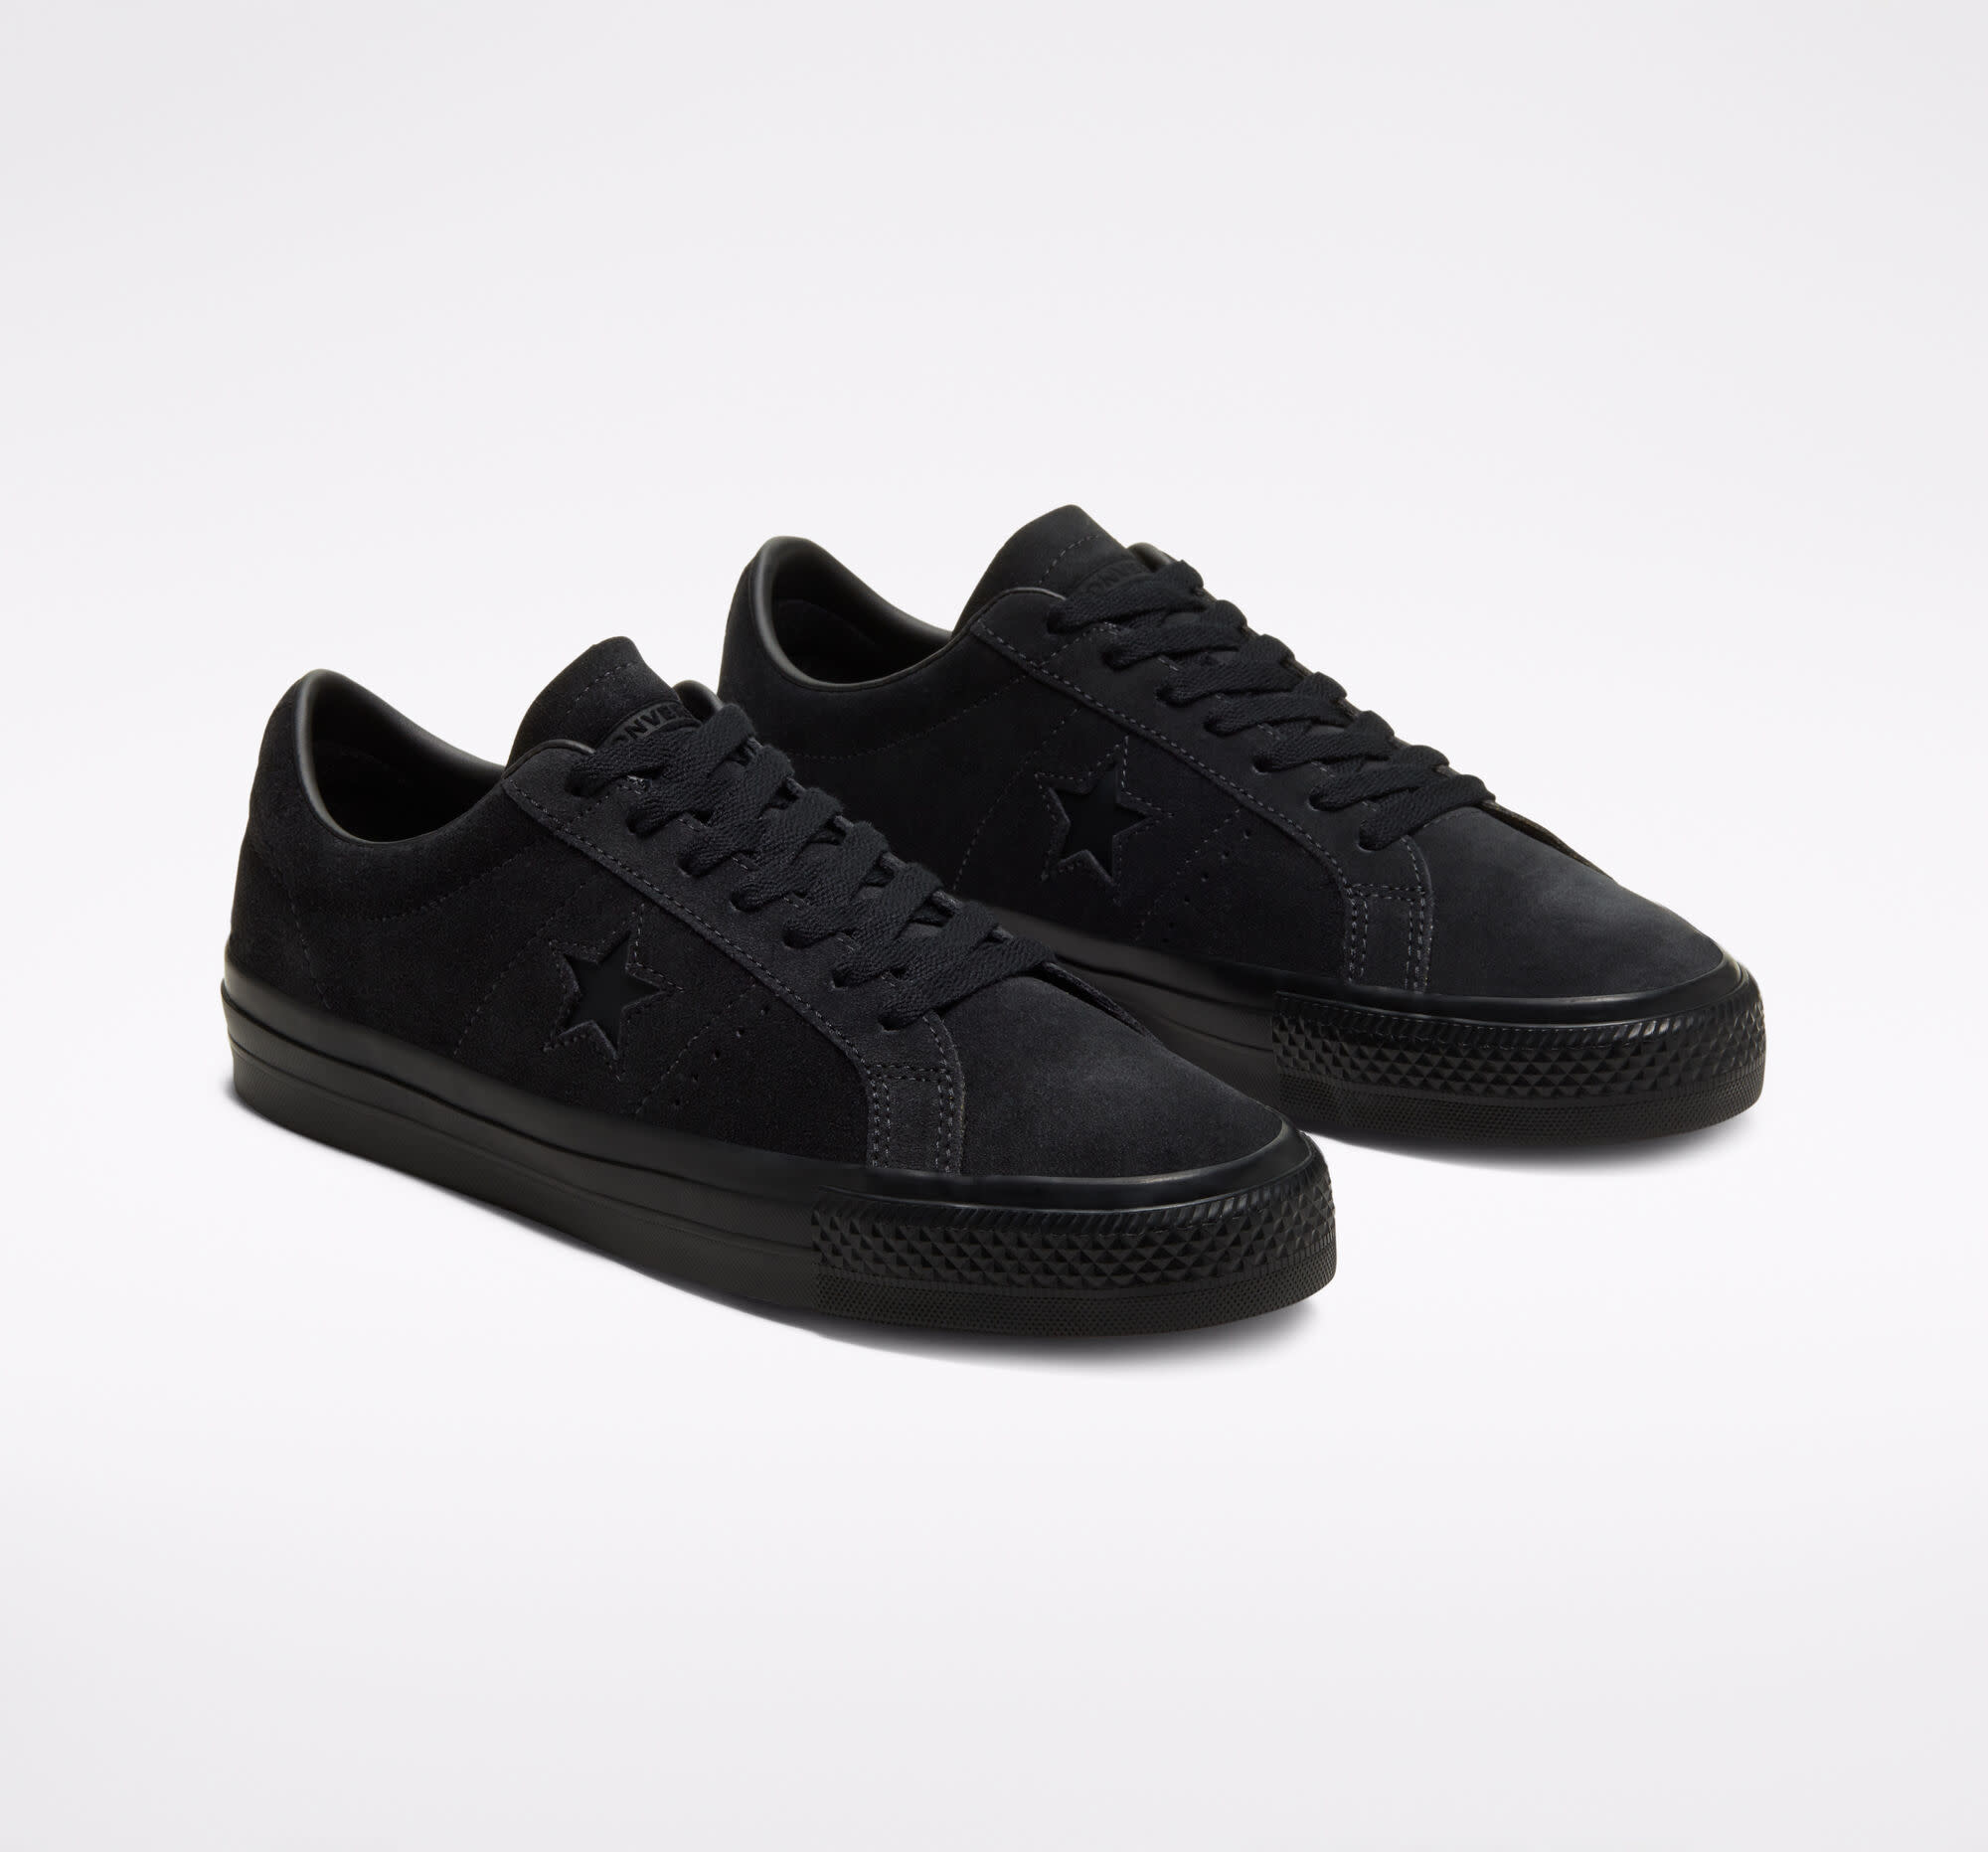 Converse USA Inc. One Star Pro OX Black/Black/Black